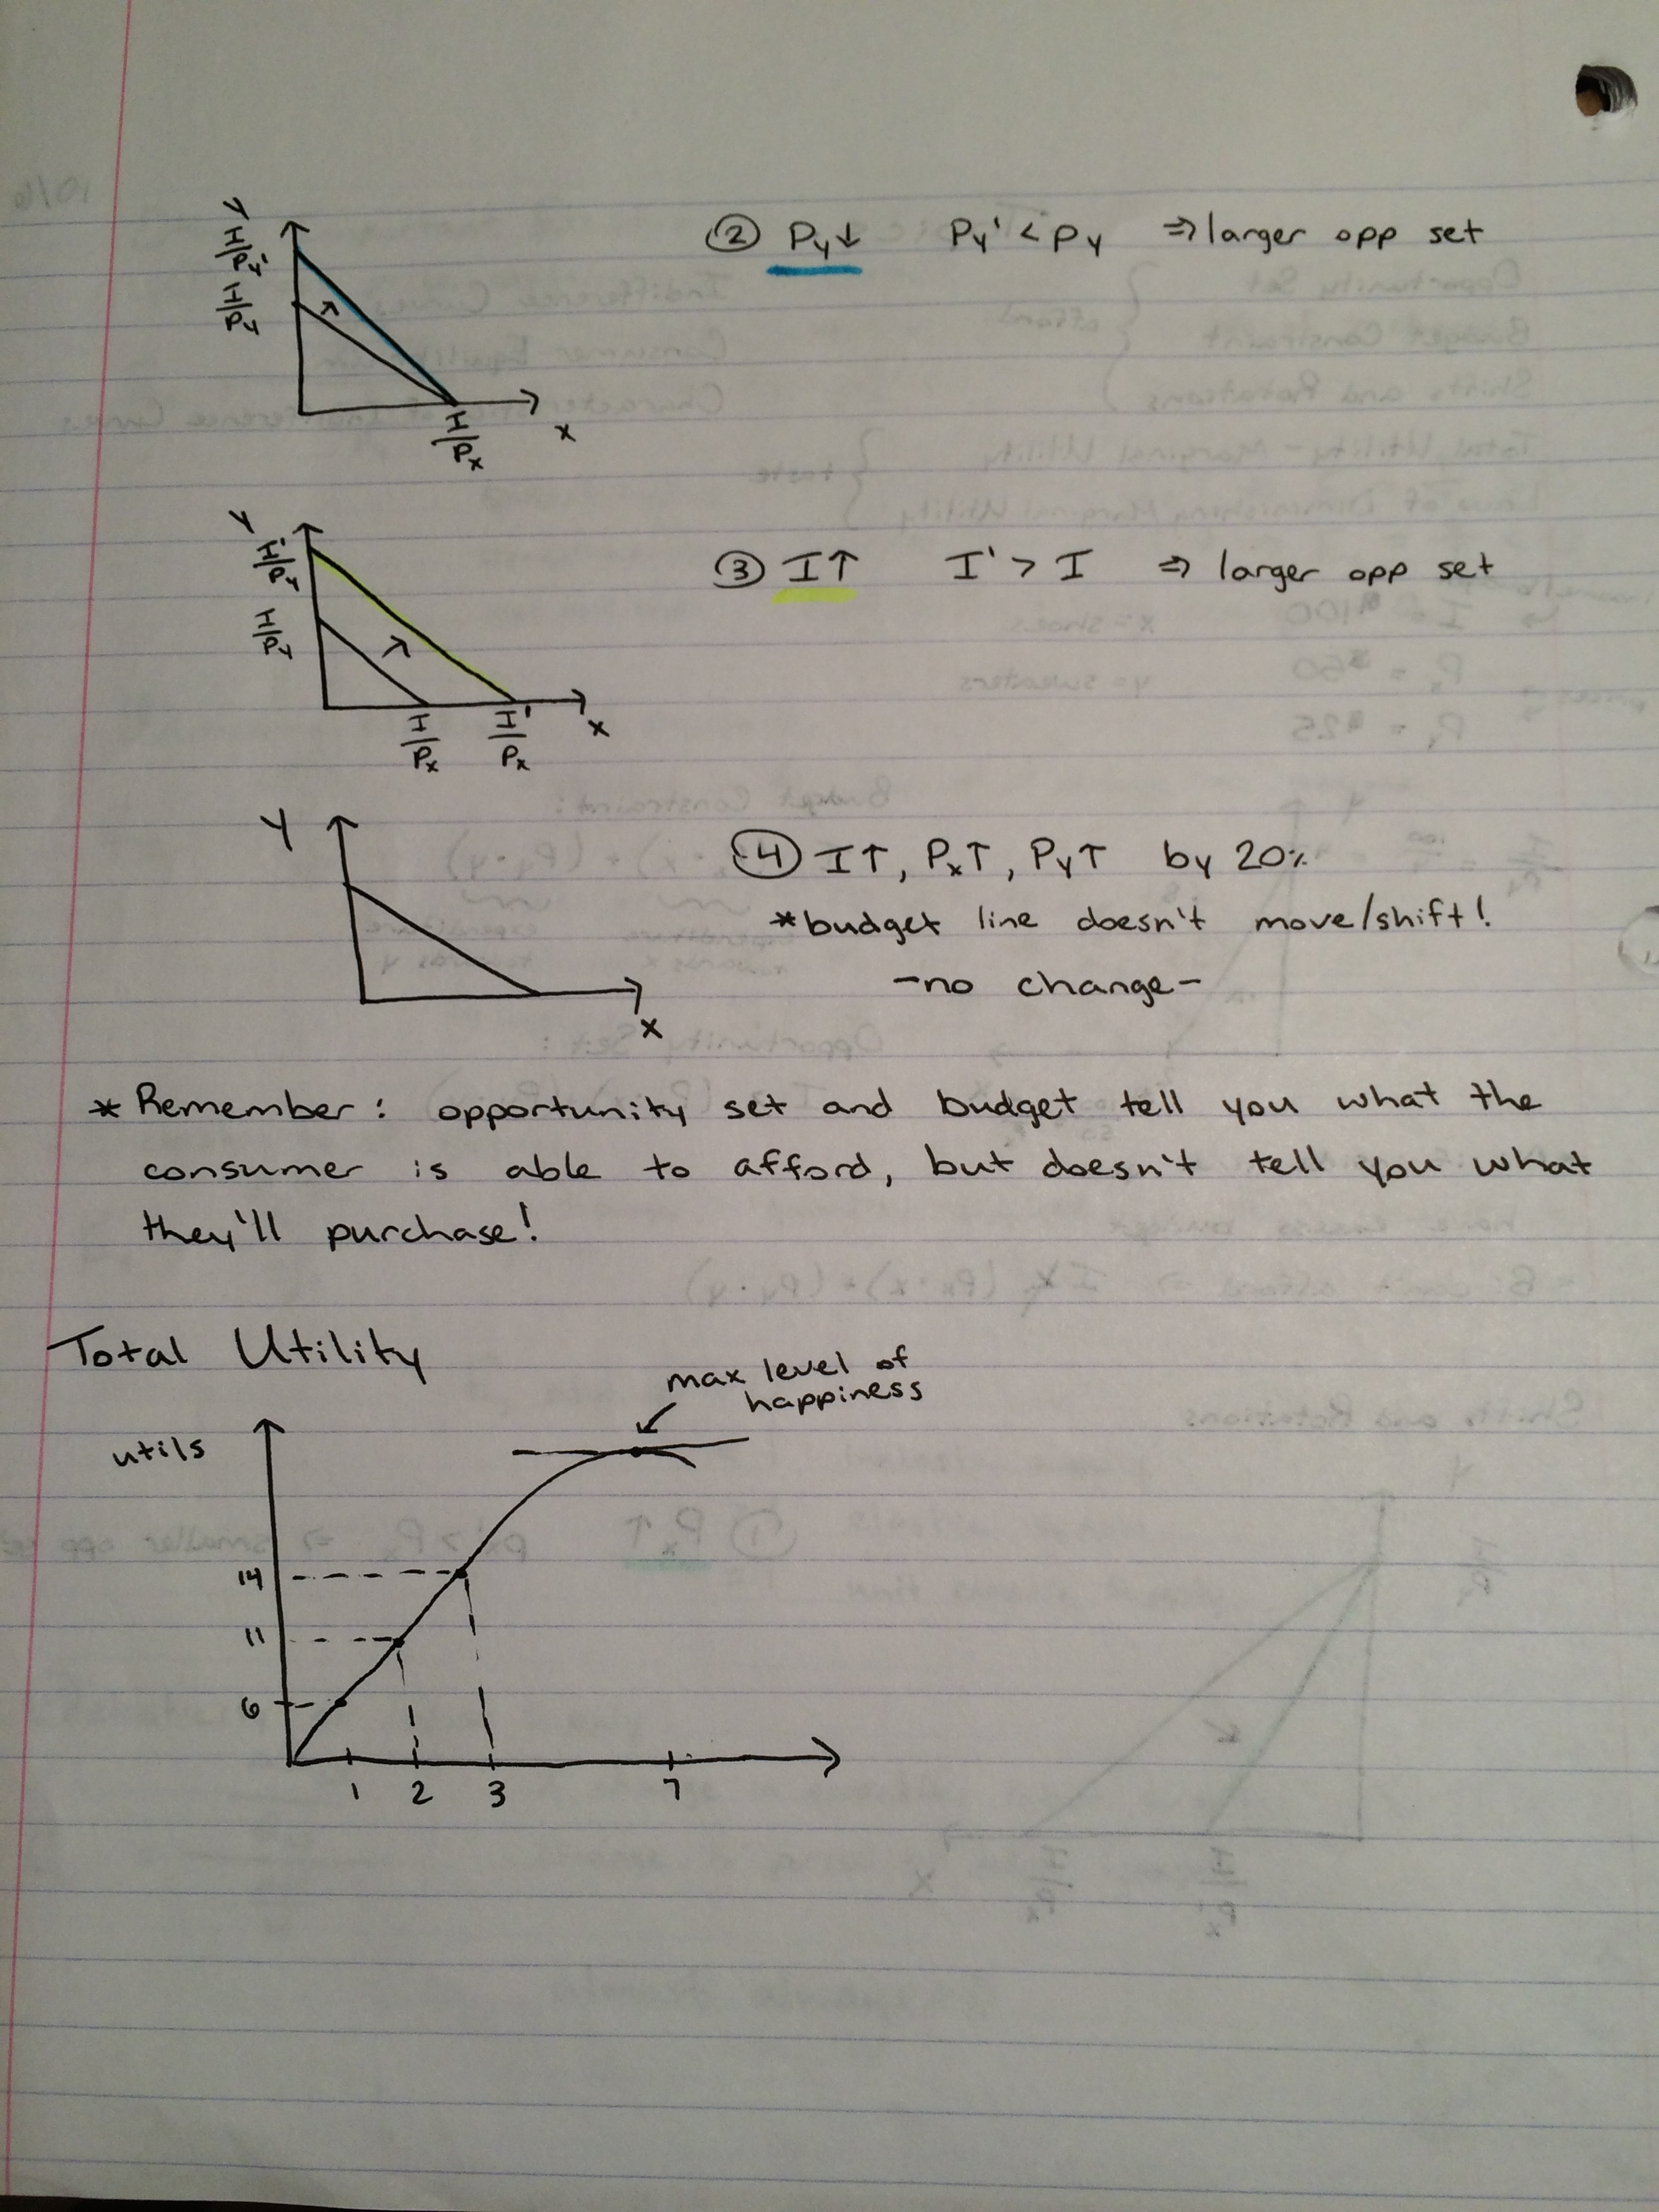 ECON 101 - Class Notes - Week 2